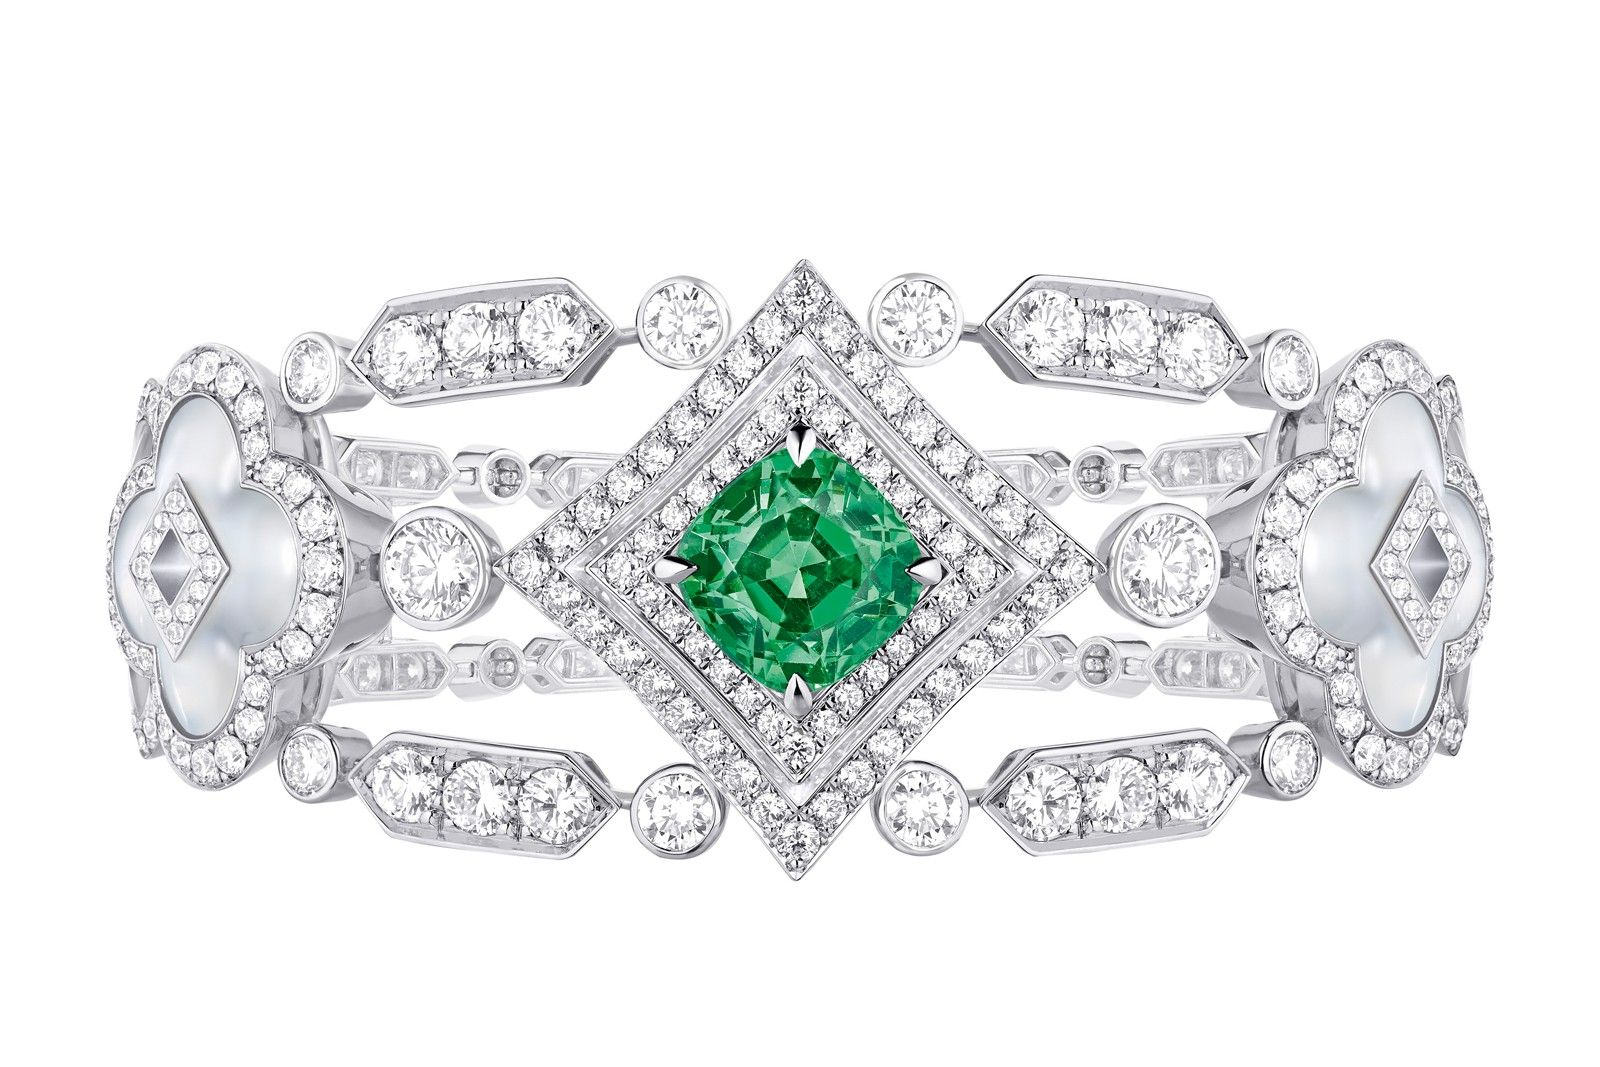 Louis Vuitton Blossom High Jewellery